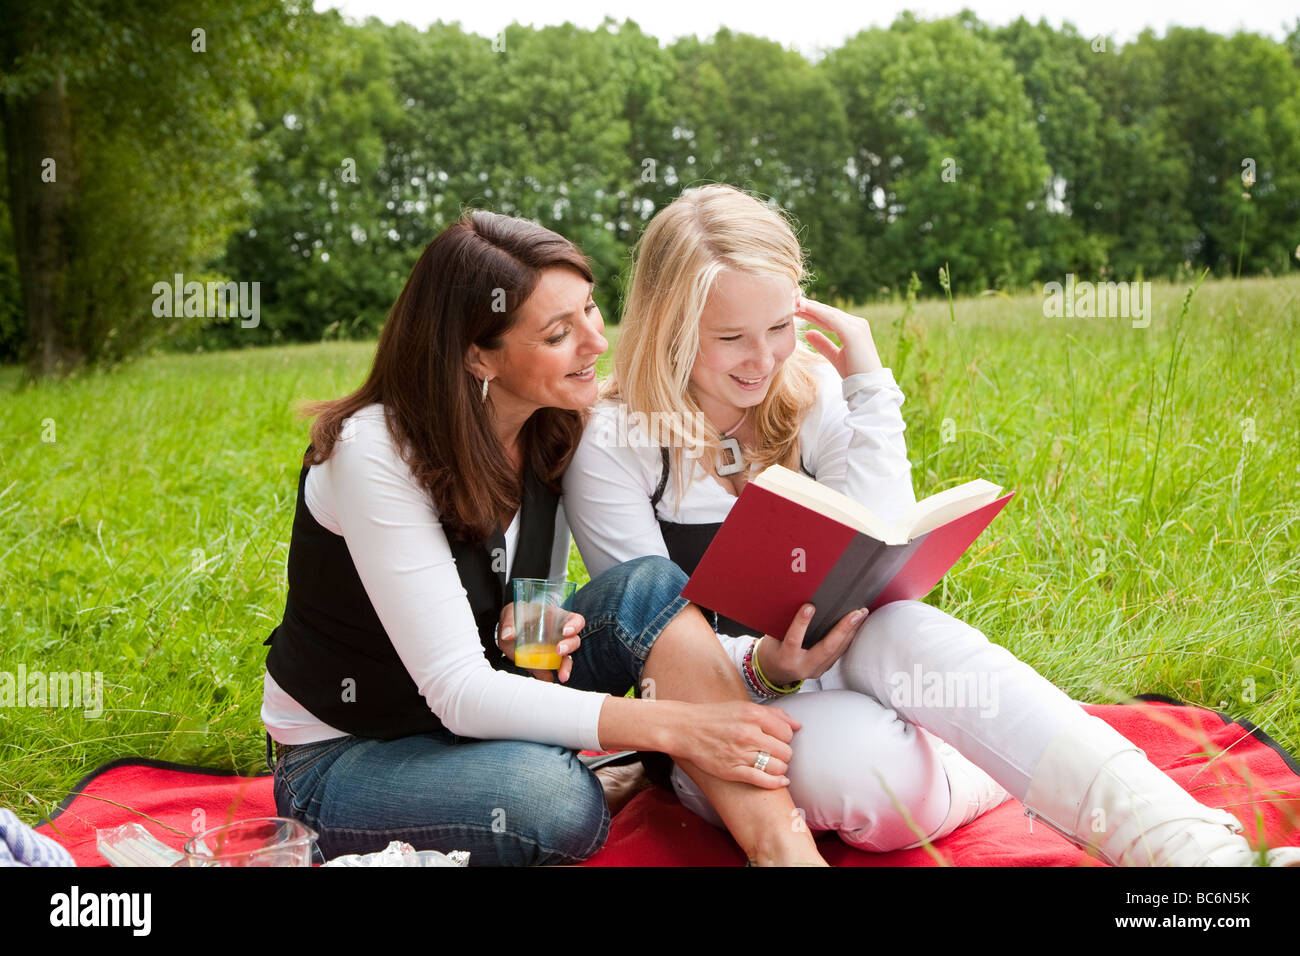 Mother and daughter outdoors on a picnic blanking reading together - Stock Image